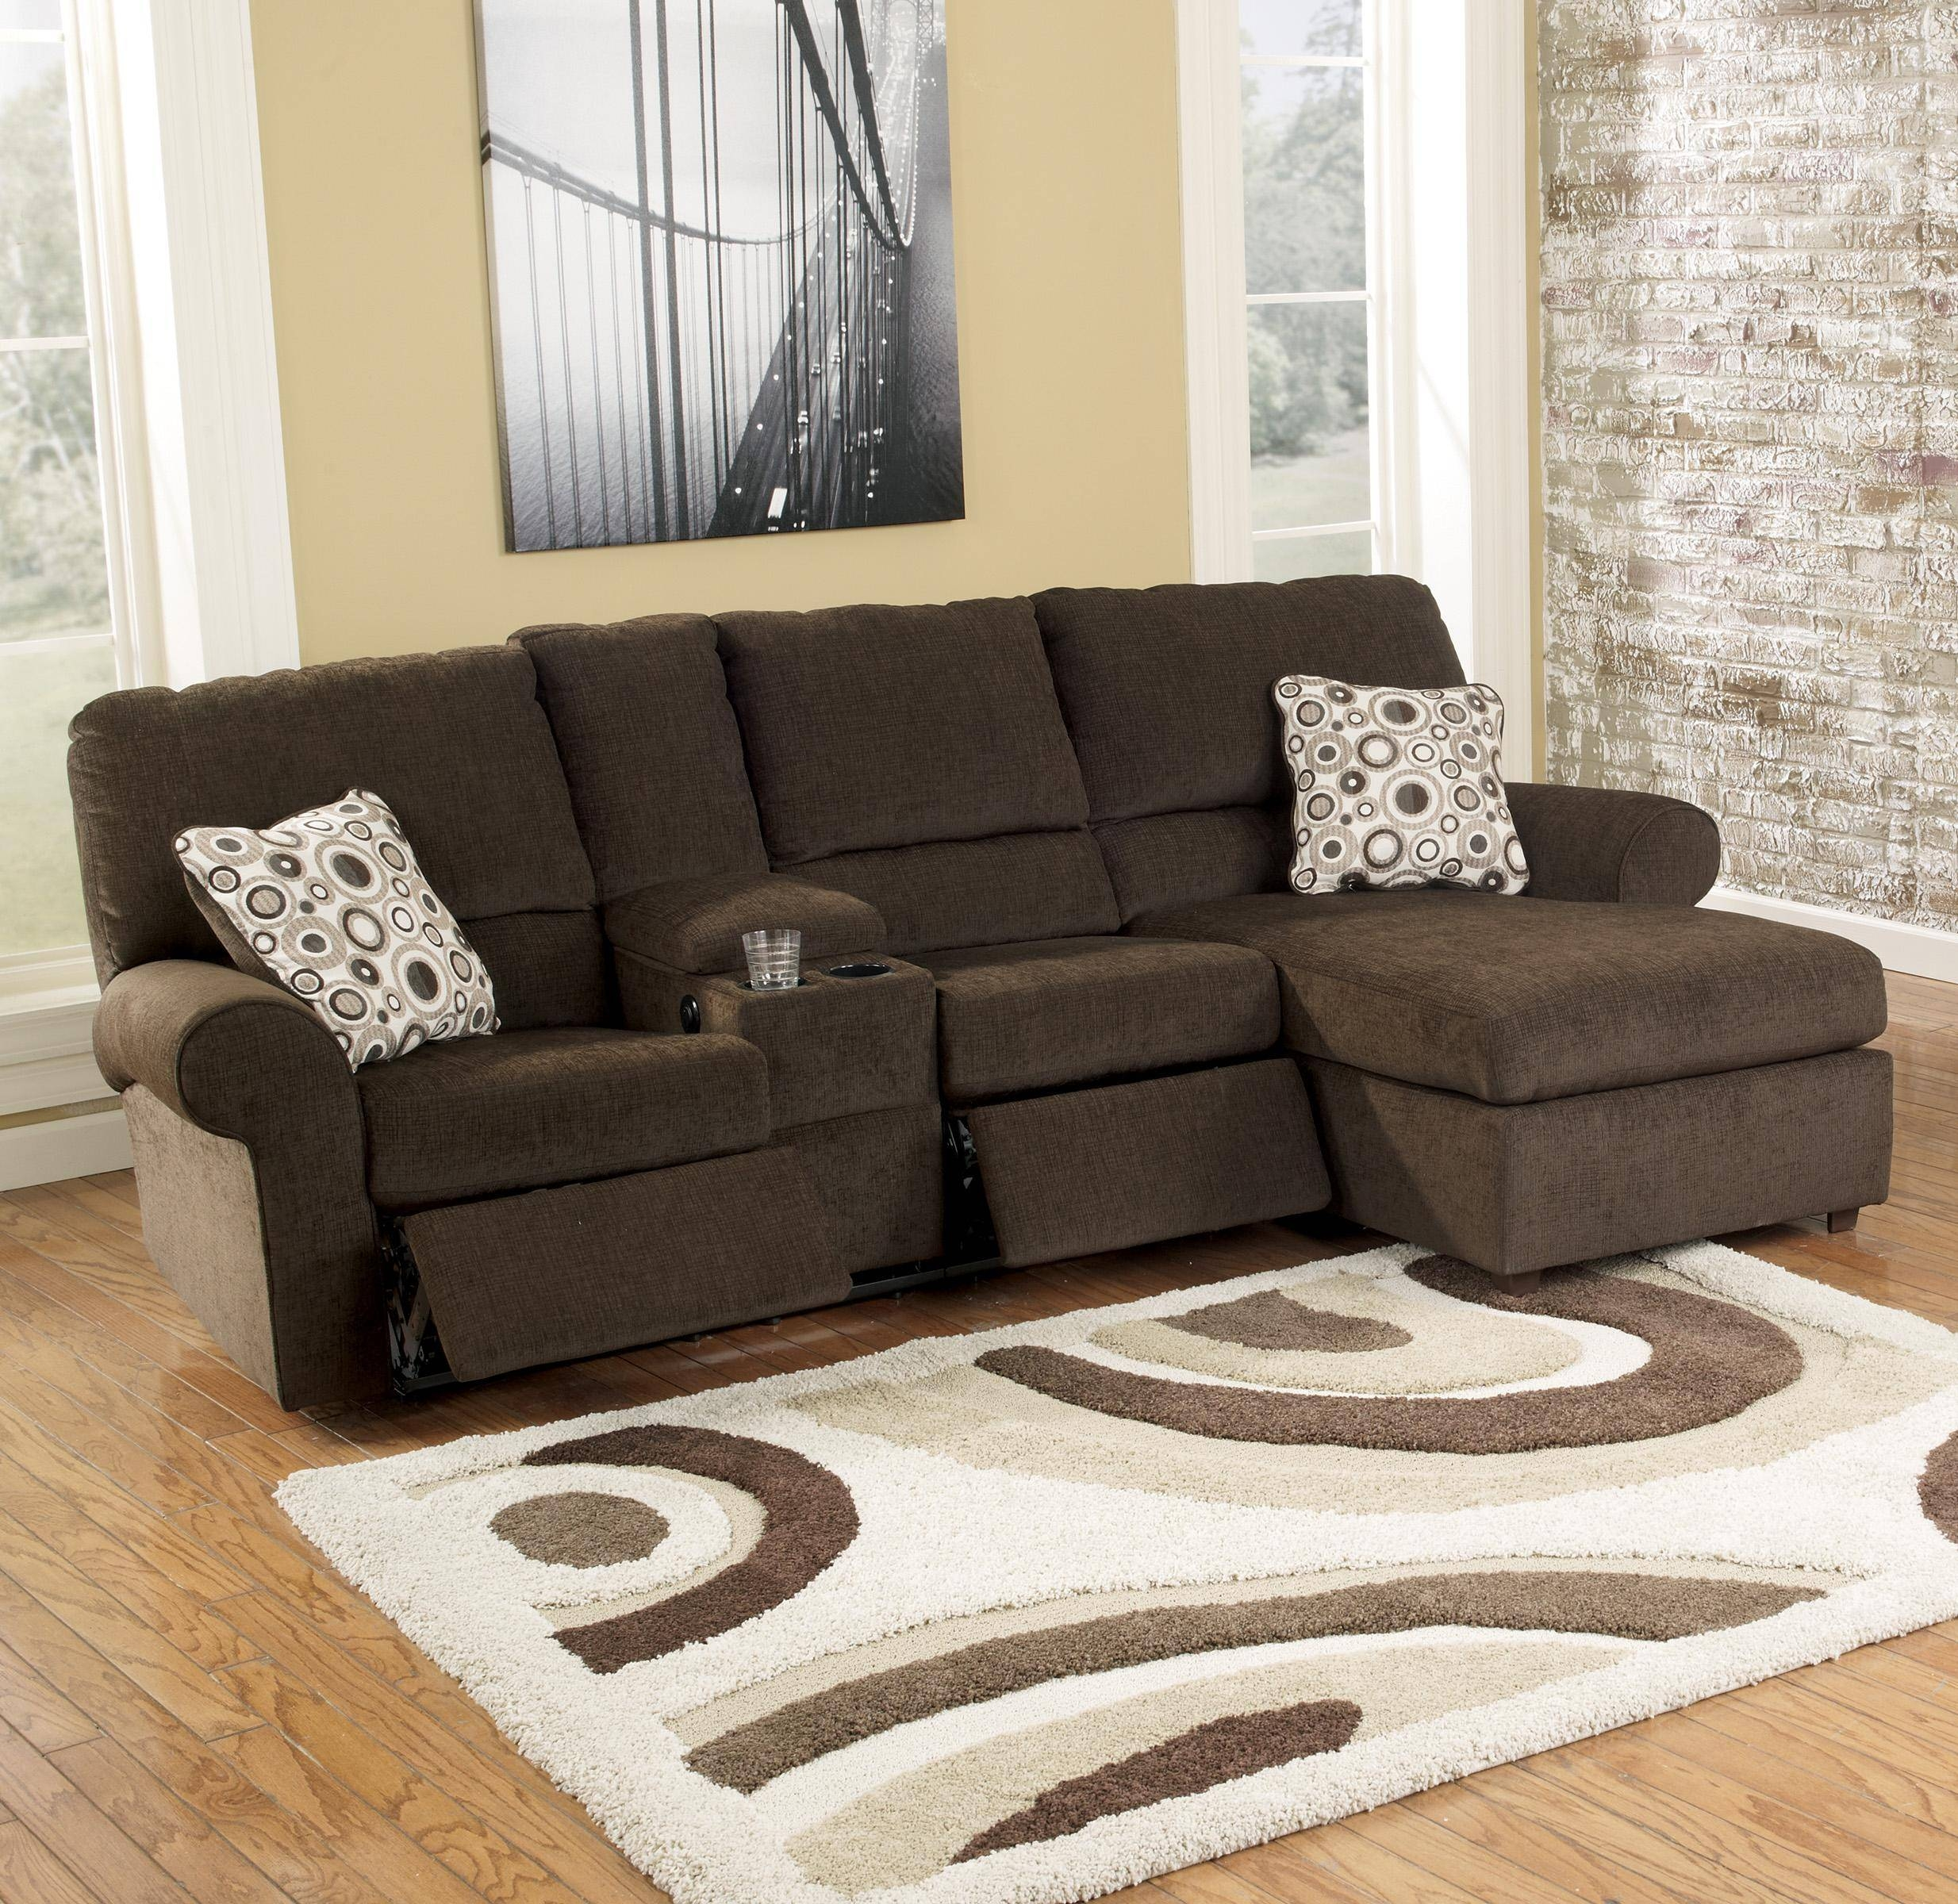 The Most Popular Sectional Sofas That Recline 96 On C Shaped intended for C Shaped Sectional Sofa (Image 26 of 30)